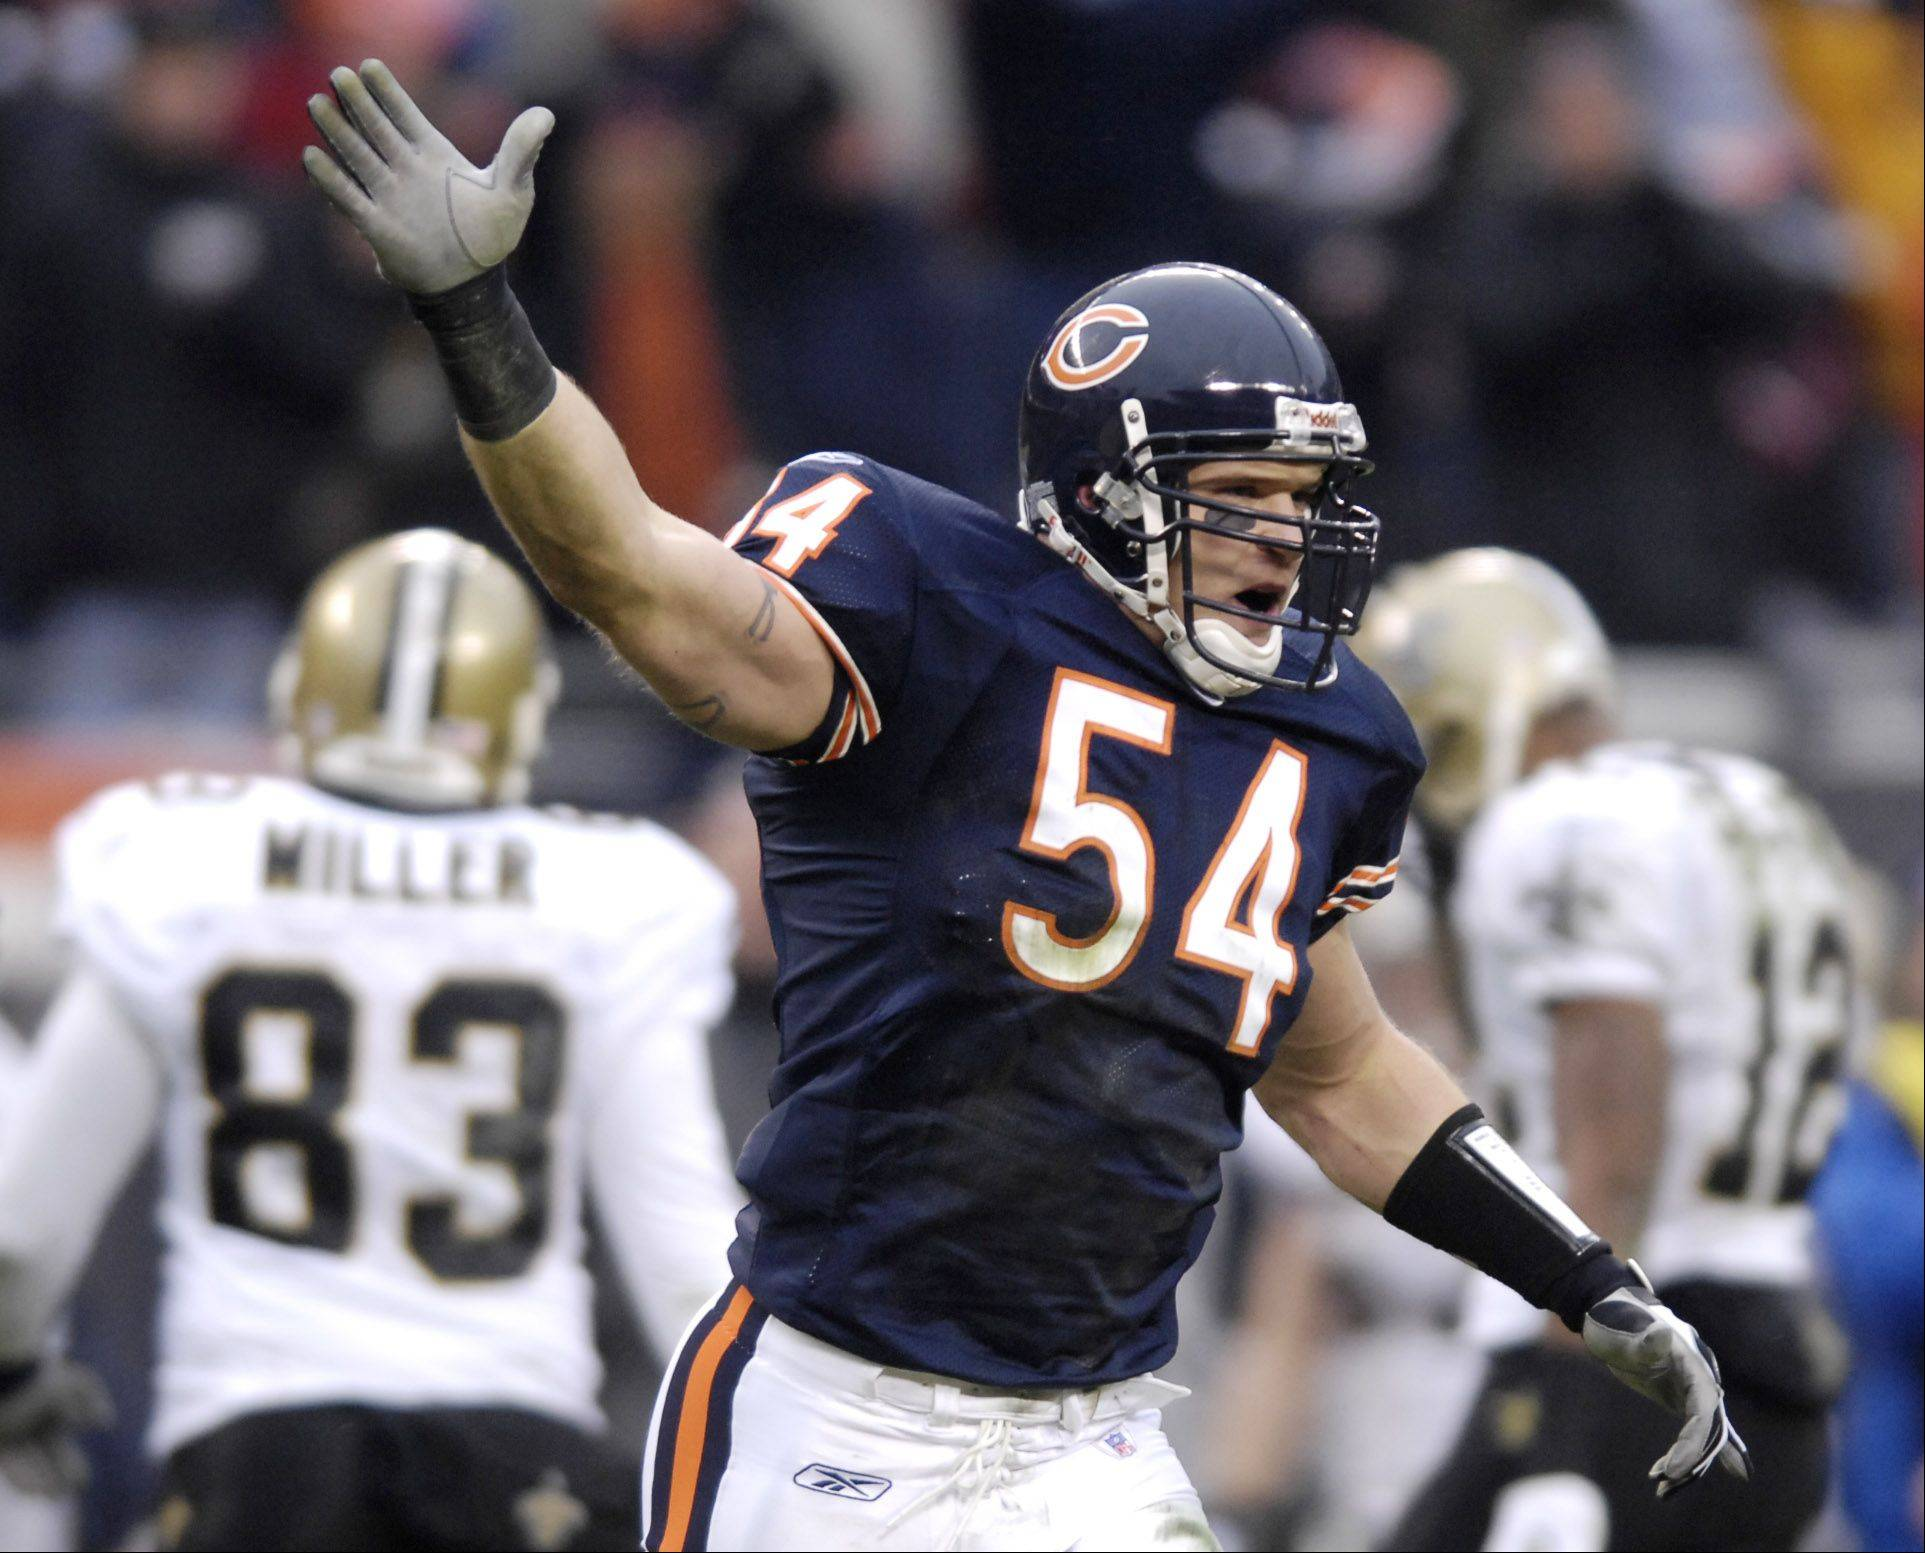 It would probably serve both Brian Urlacher and the Bears best if the parties could come to an agreement on a new contract.